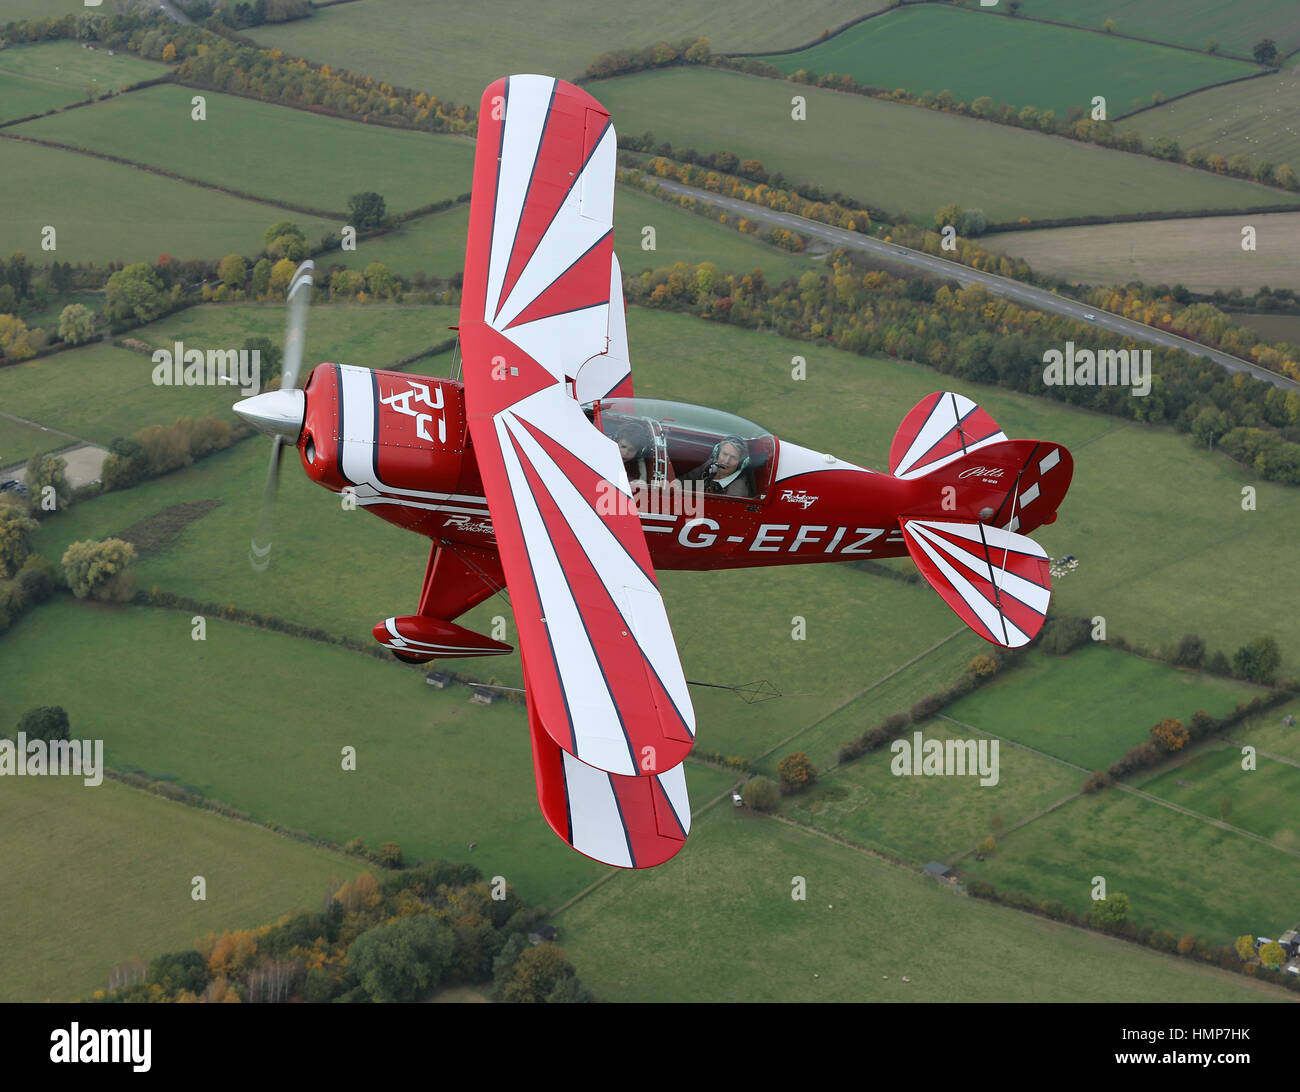 The Rich Goodwin Pitts Special being flown over the Worcestershire countryside - Stock Image